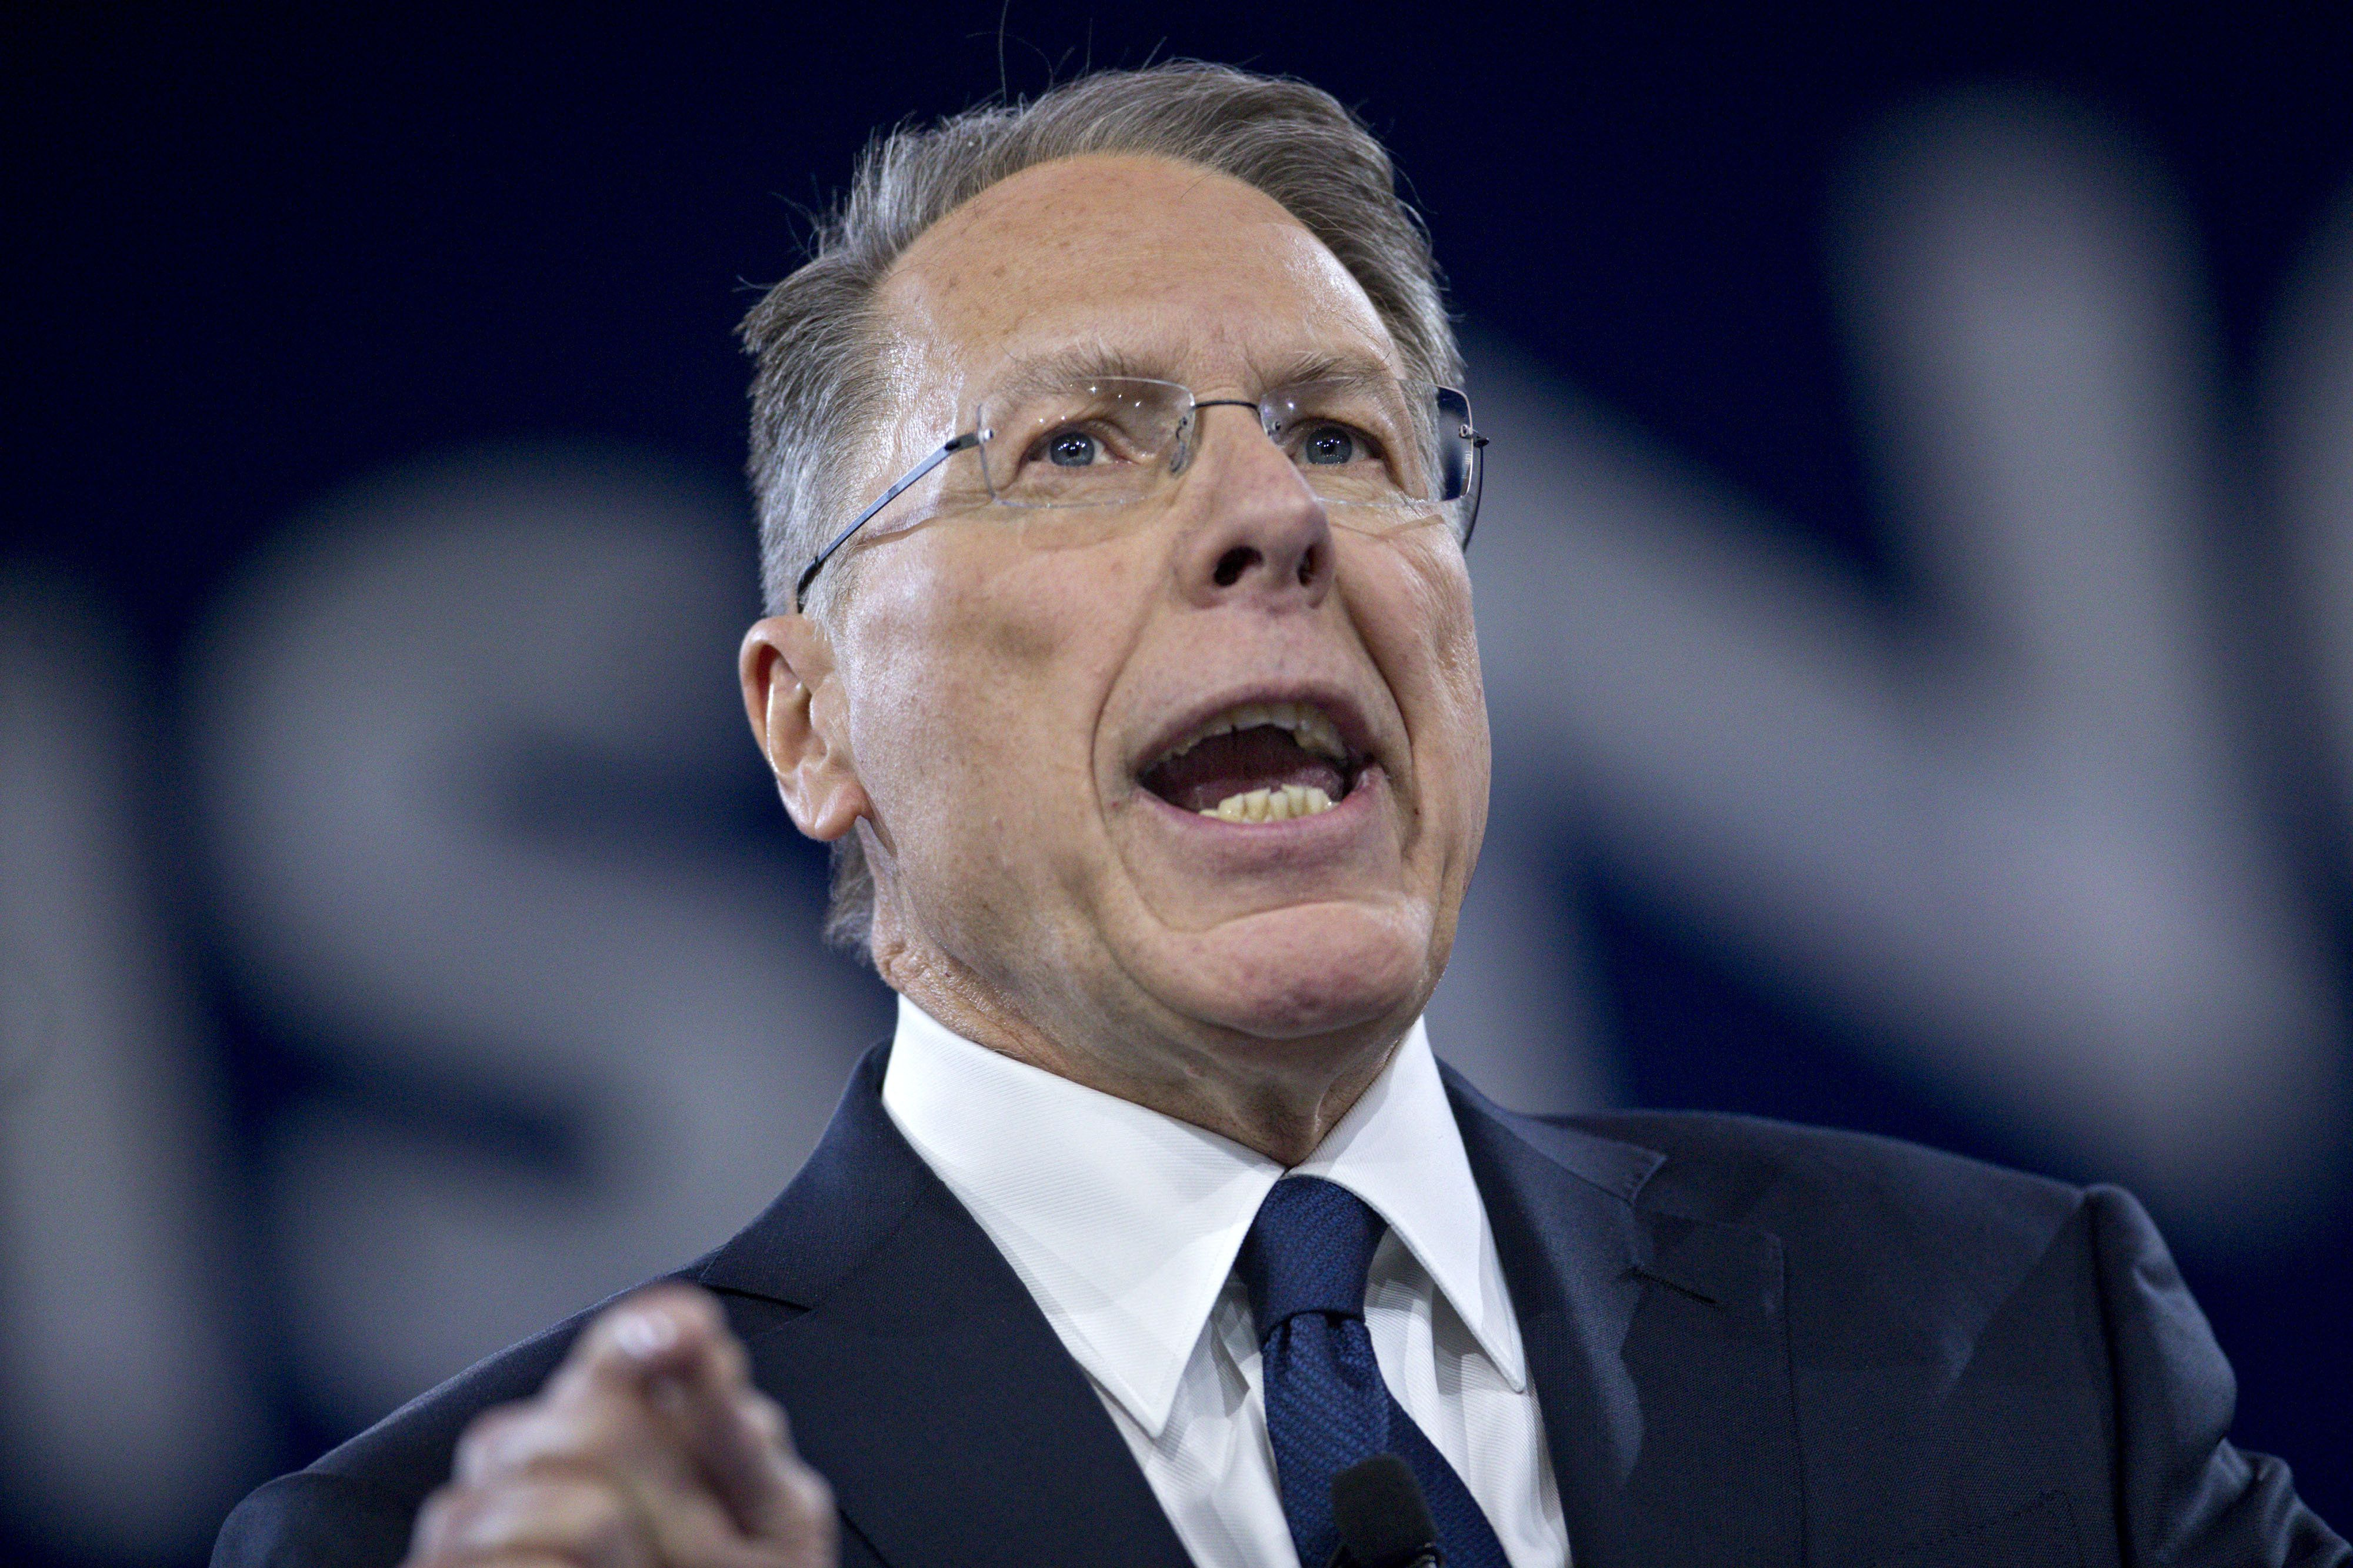 Wayne LaPierre, chief executive of the National Rifle Association (NRA), speaks during the American Conservative Unions Conservative Political Action Conference (CPAC) meeting in National Harbor, Maryland, U.S., on Thursday, March 3, 2016. CPAC runs until March 5 with the five remaining 2016 Republican presidential candidates speaking. Photographer: Andrew Harrer/Bloomberg via Getty Images